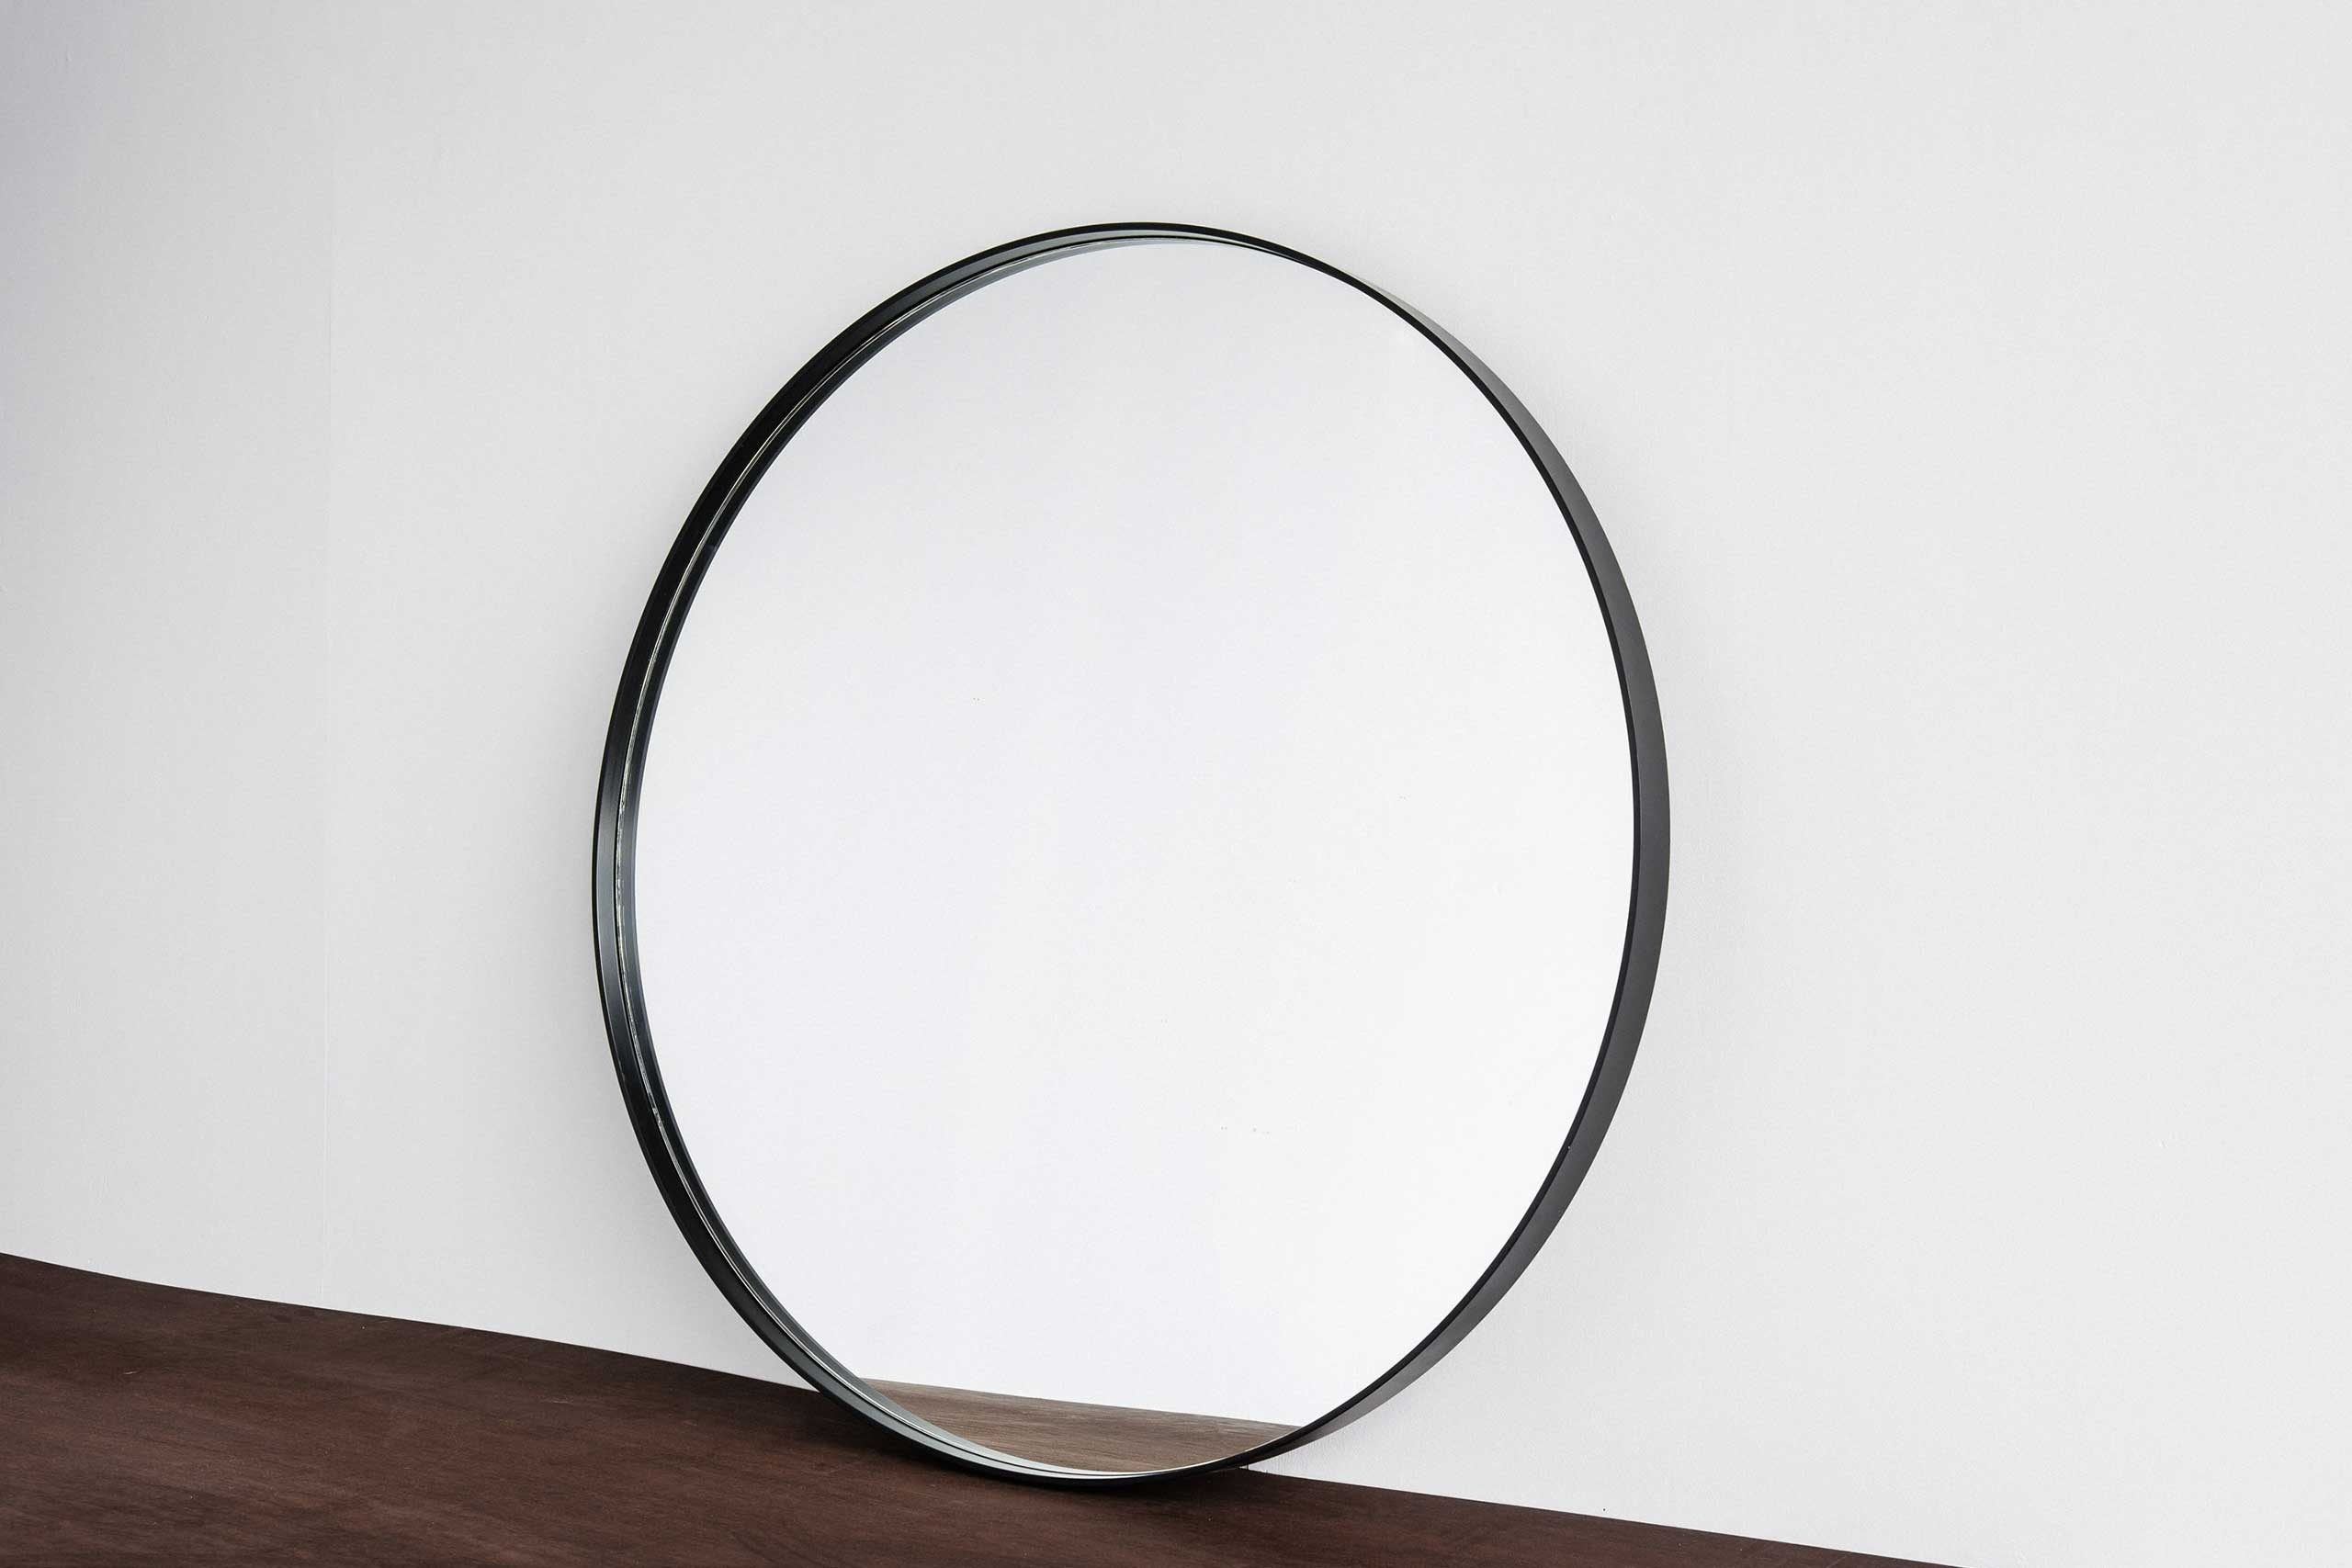 Home Industry Furniture Designed Handcrafted In New Zealand 2016 Regarding Large Circular Mirrors (Image 7 of 15)